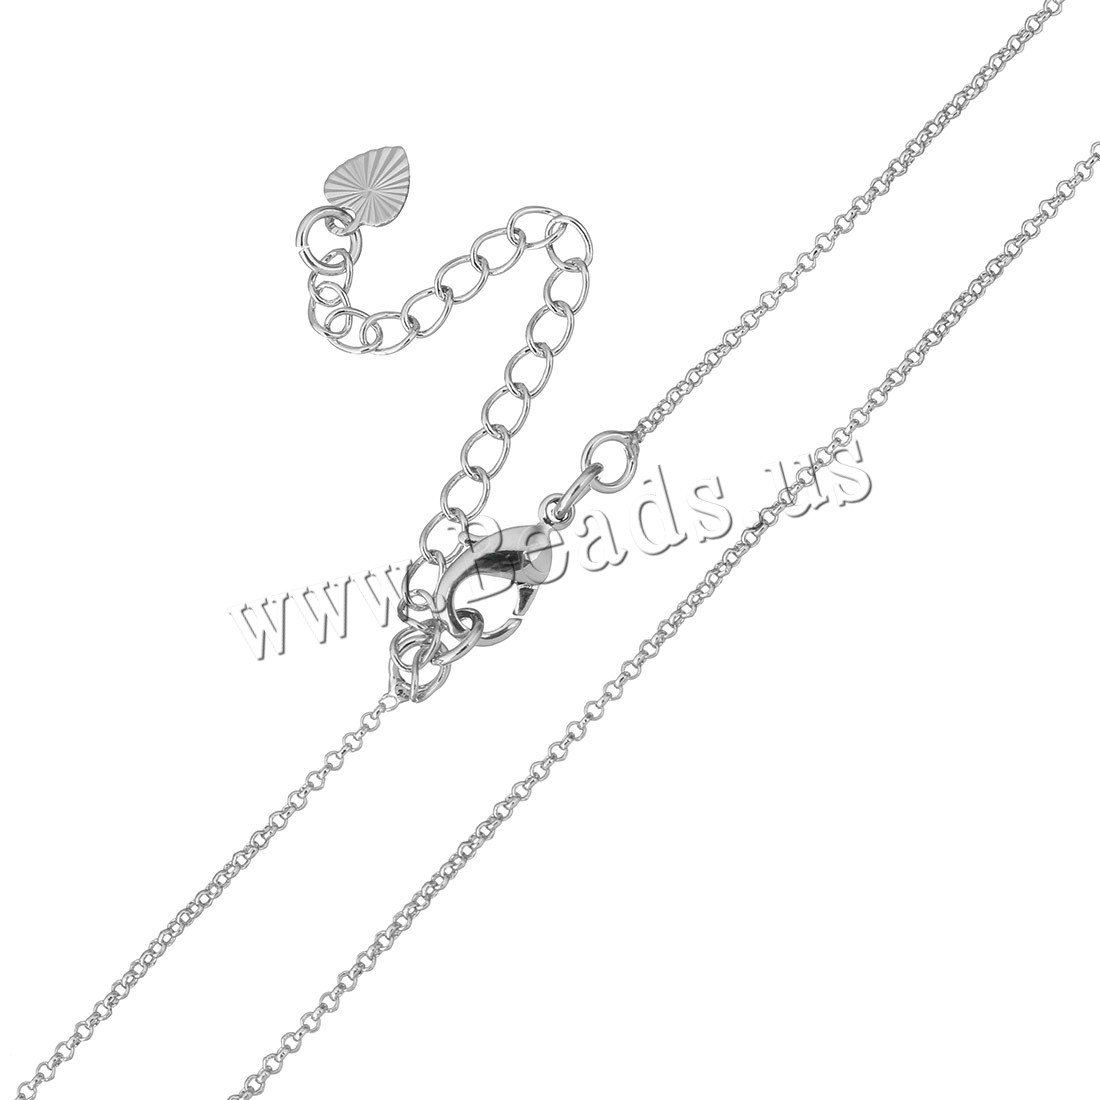 Buy Brass Necklace Chain 2Inch extender chain platinum plated round link chain & woman 1.20mm Length:Approx 17 Inch 50Strands/Bag Sold Bag